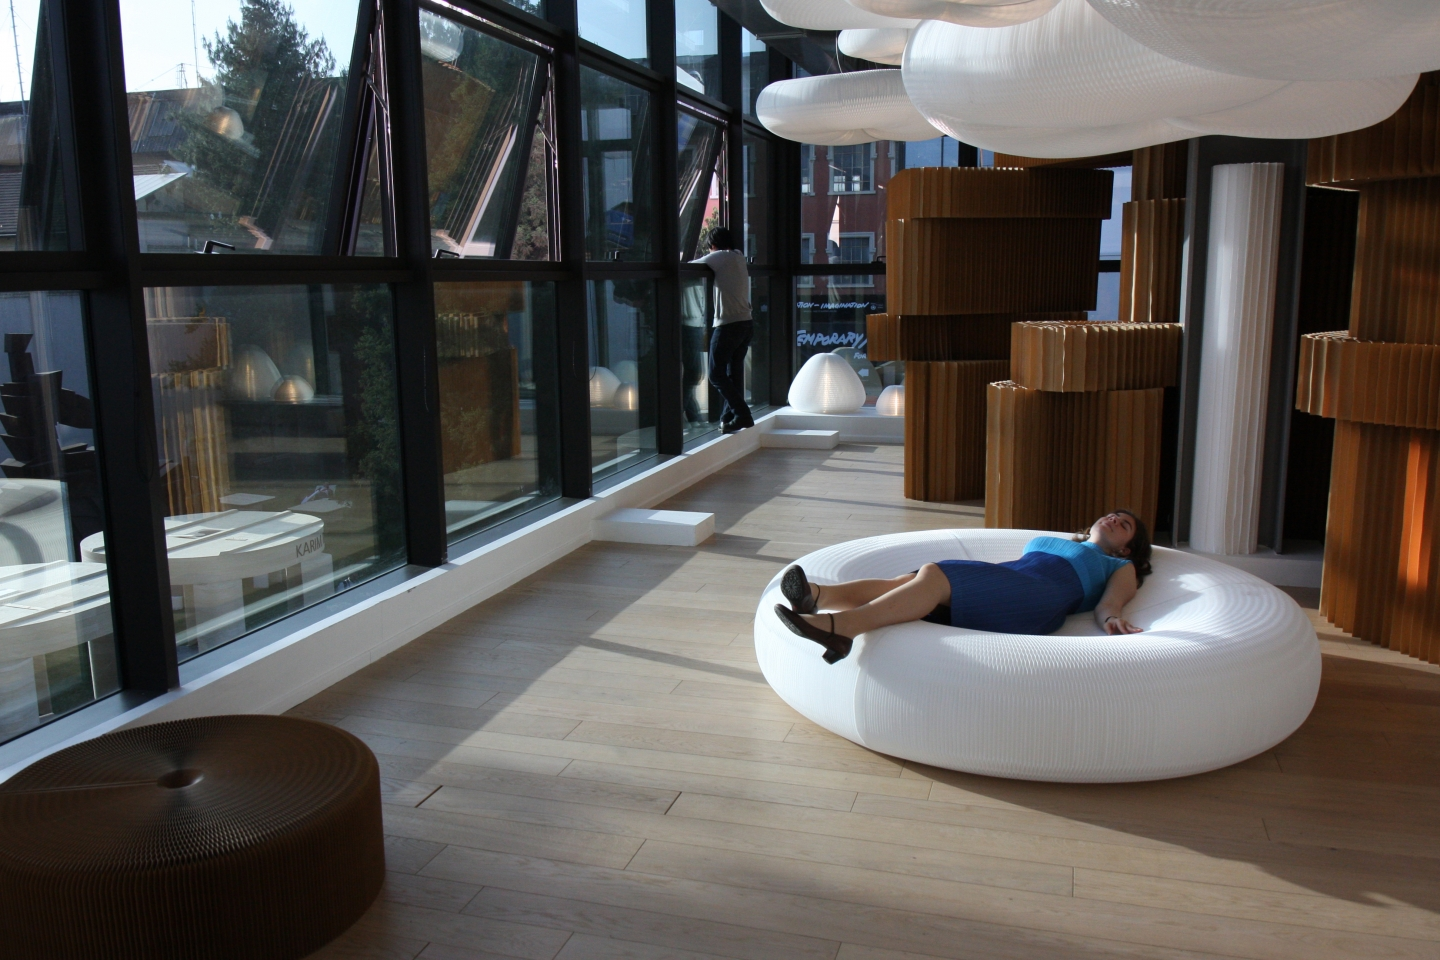 A woman relaxes on a softseating lounger at Superstudio Piu.